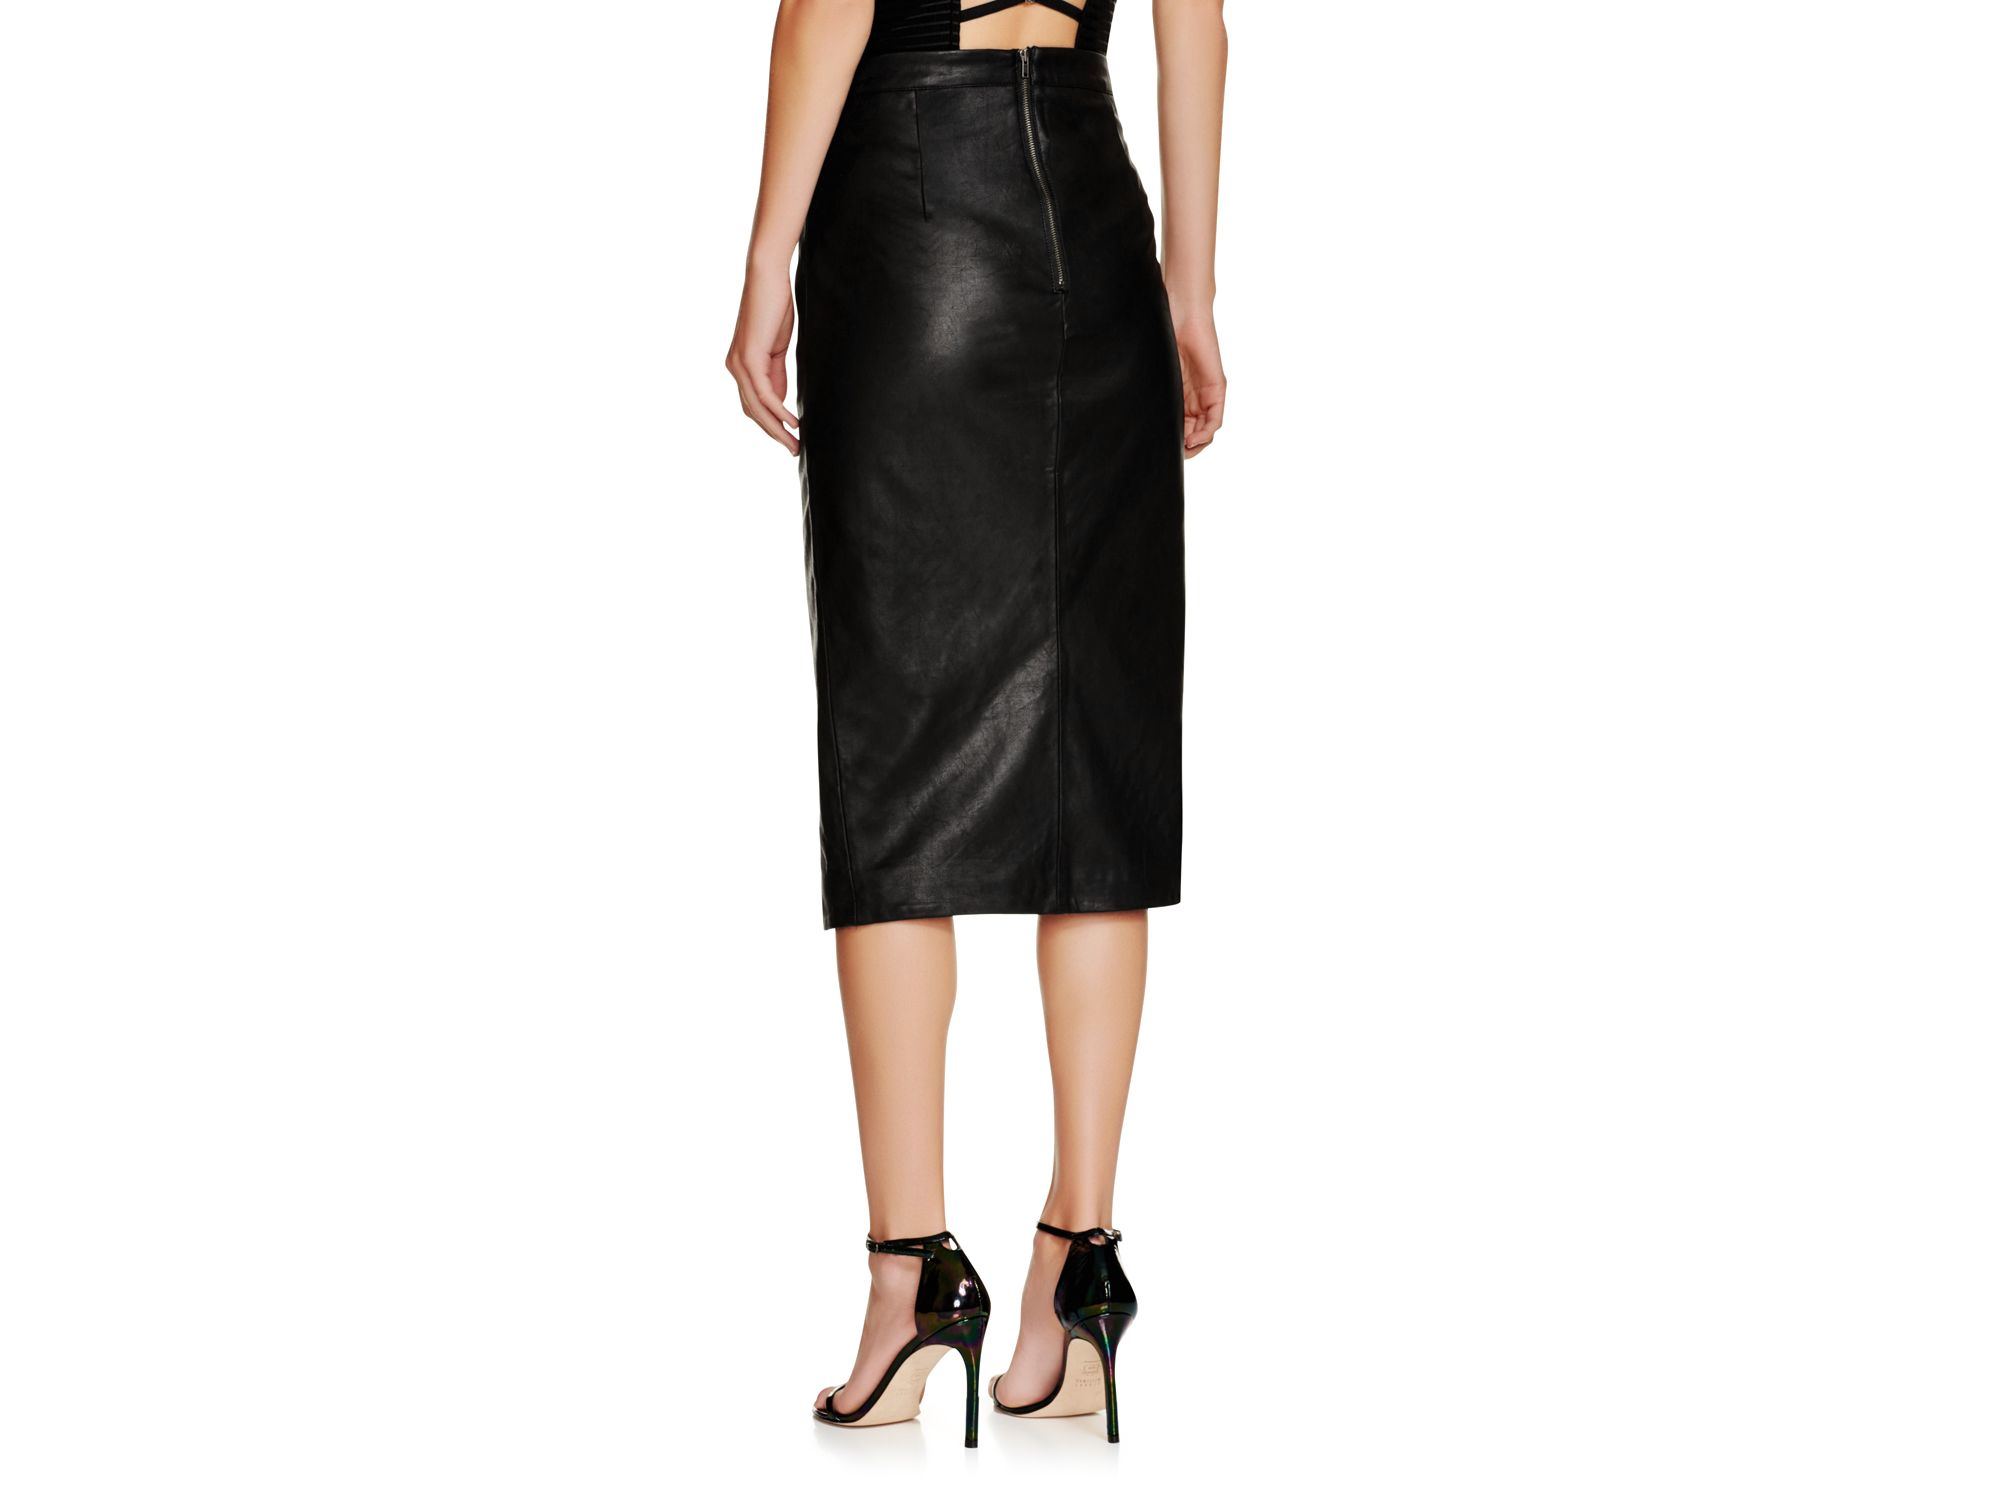 Find great deals on eBay for leather skirt slit. Shop with confidence.